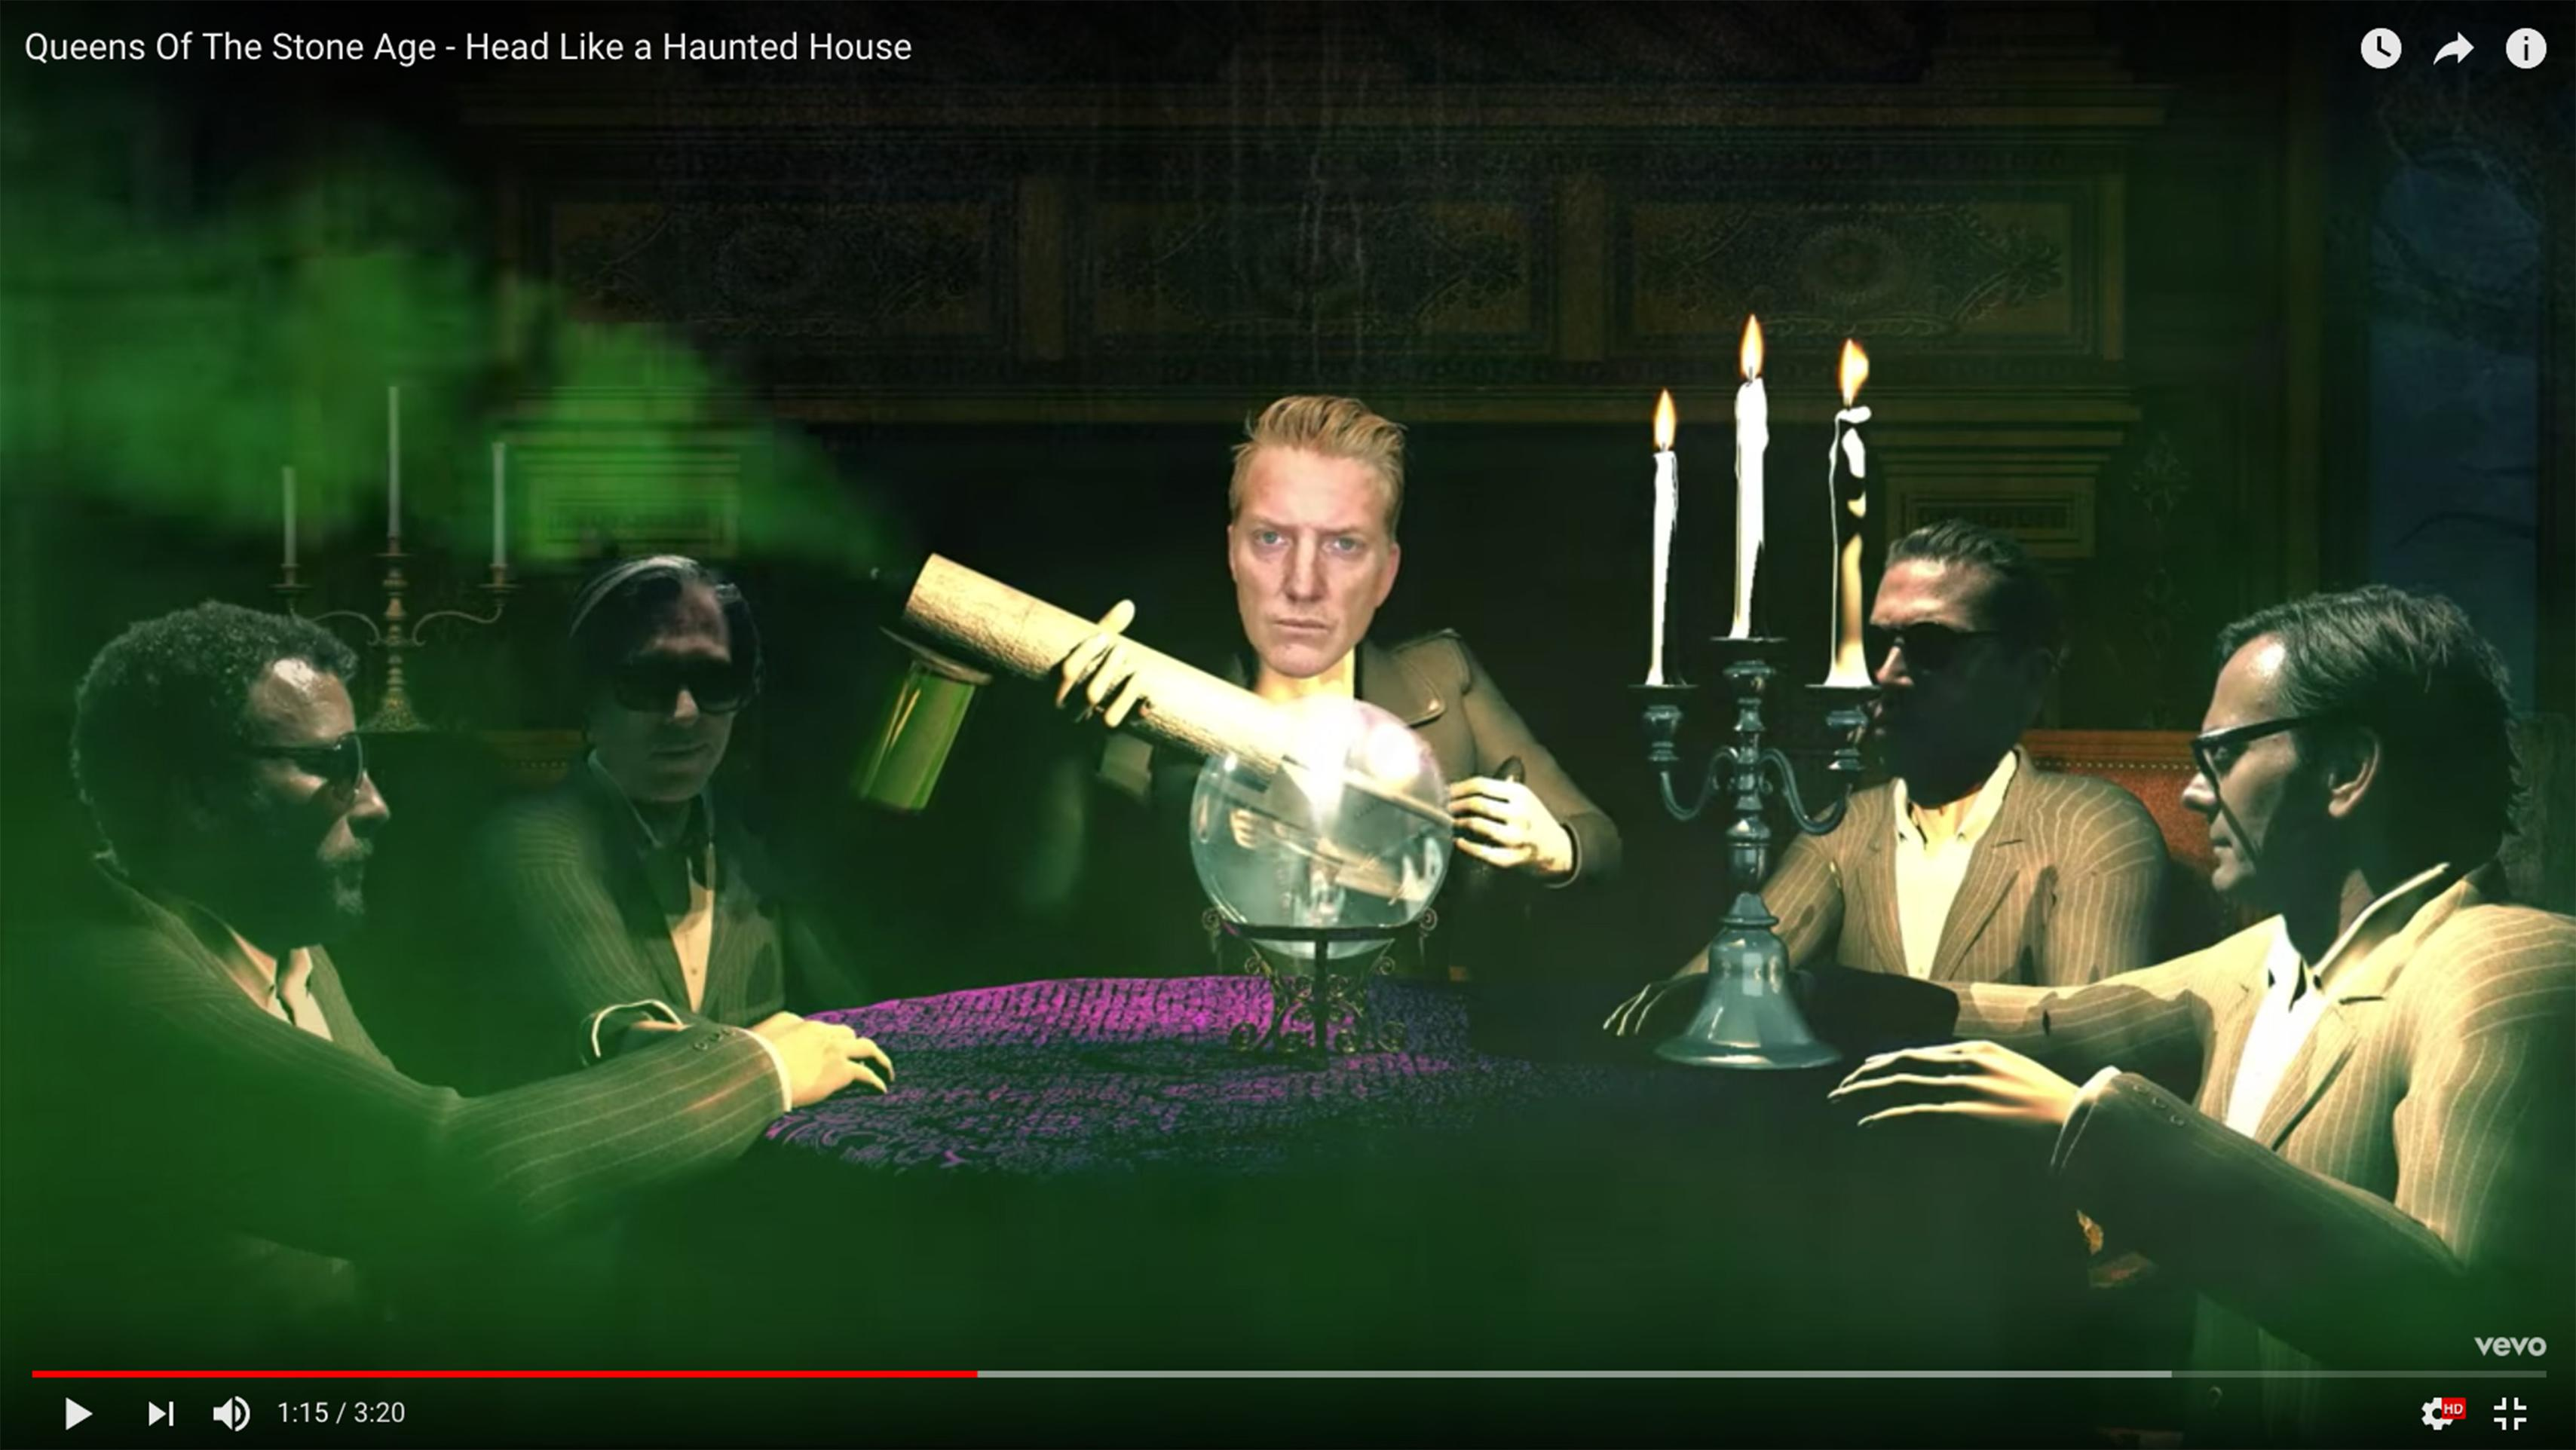 watch queens of the stone age get spooky in a haunted house. Black Bedroom Furniture Sets. Home Design Ideas